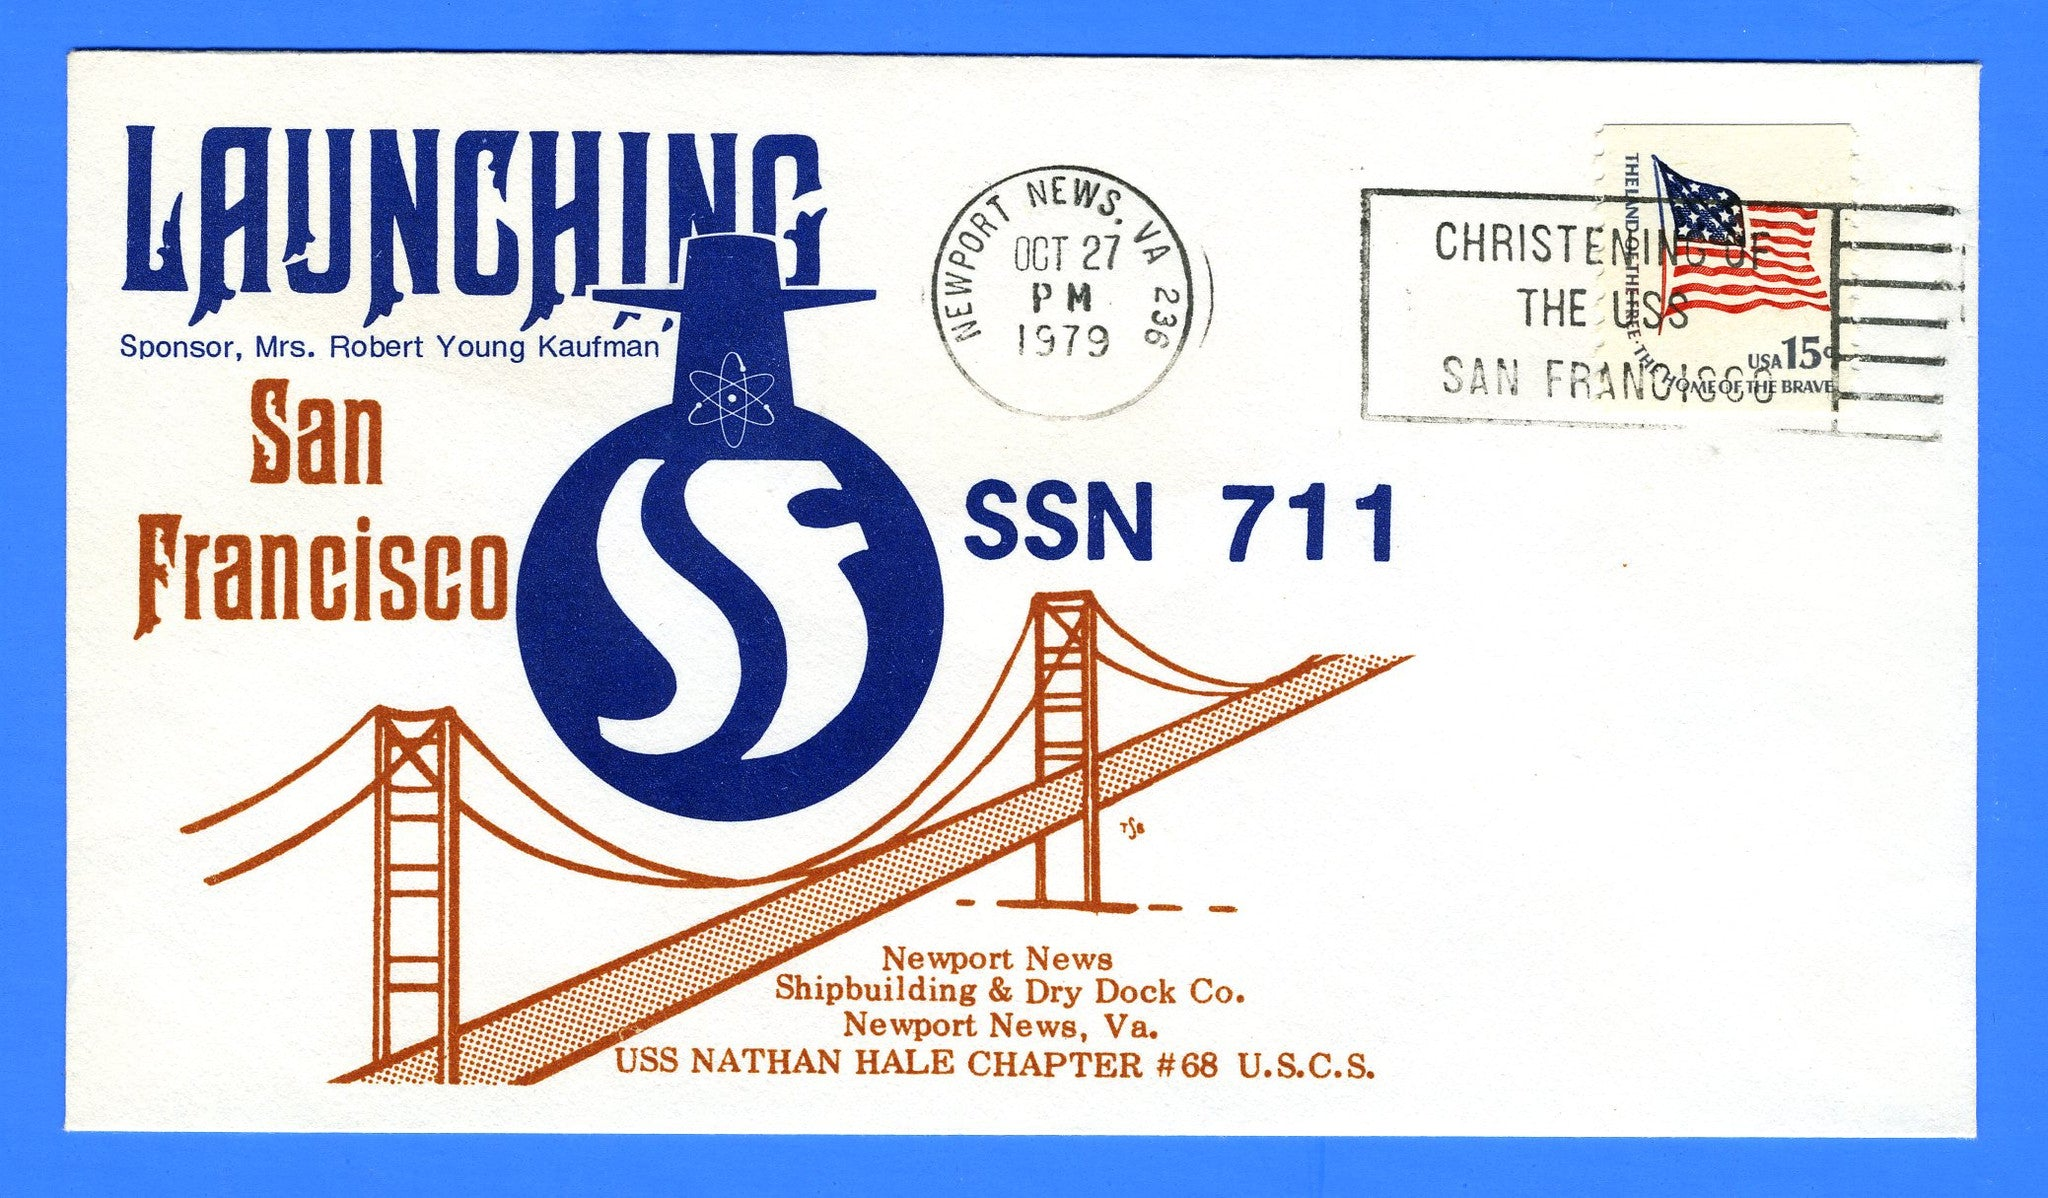 USS San Francisco SSN-711 Christened & Launched October 27, 1979 - Cachet by Nathan Hale Chapter No. 68 USCS